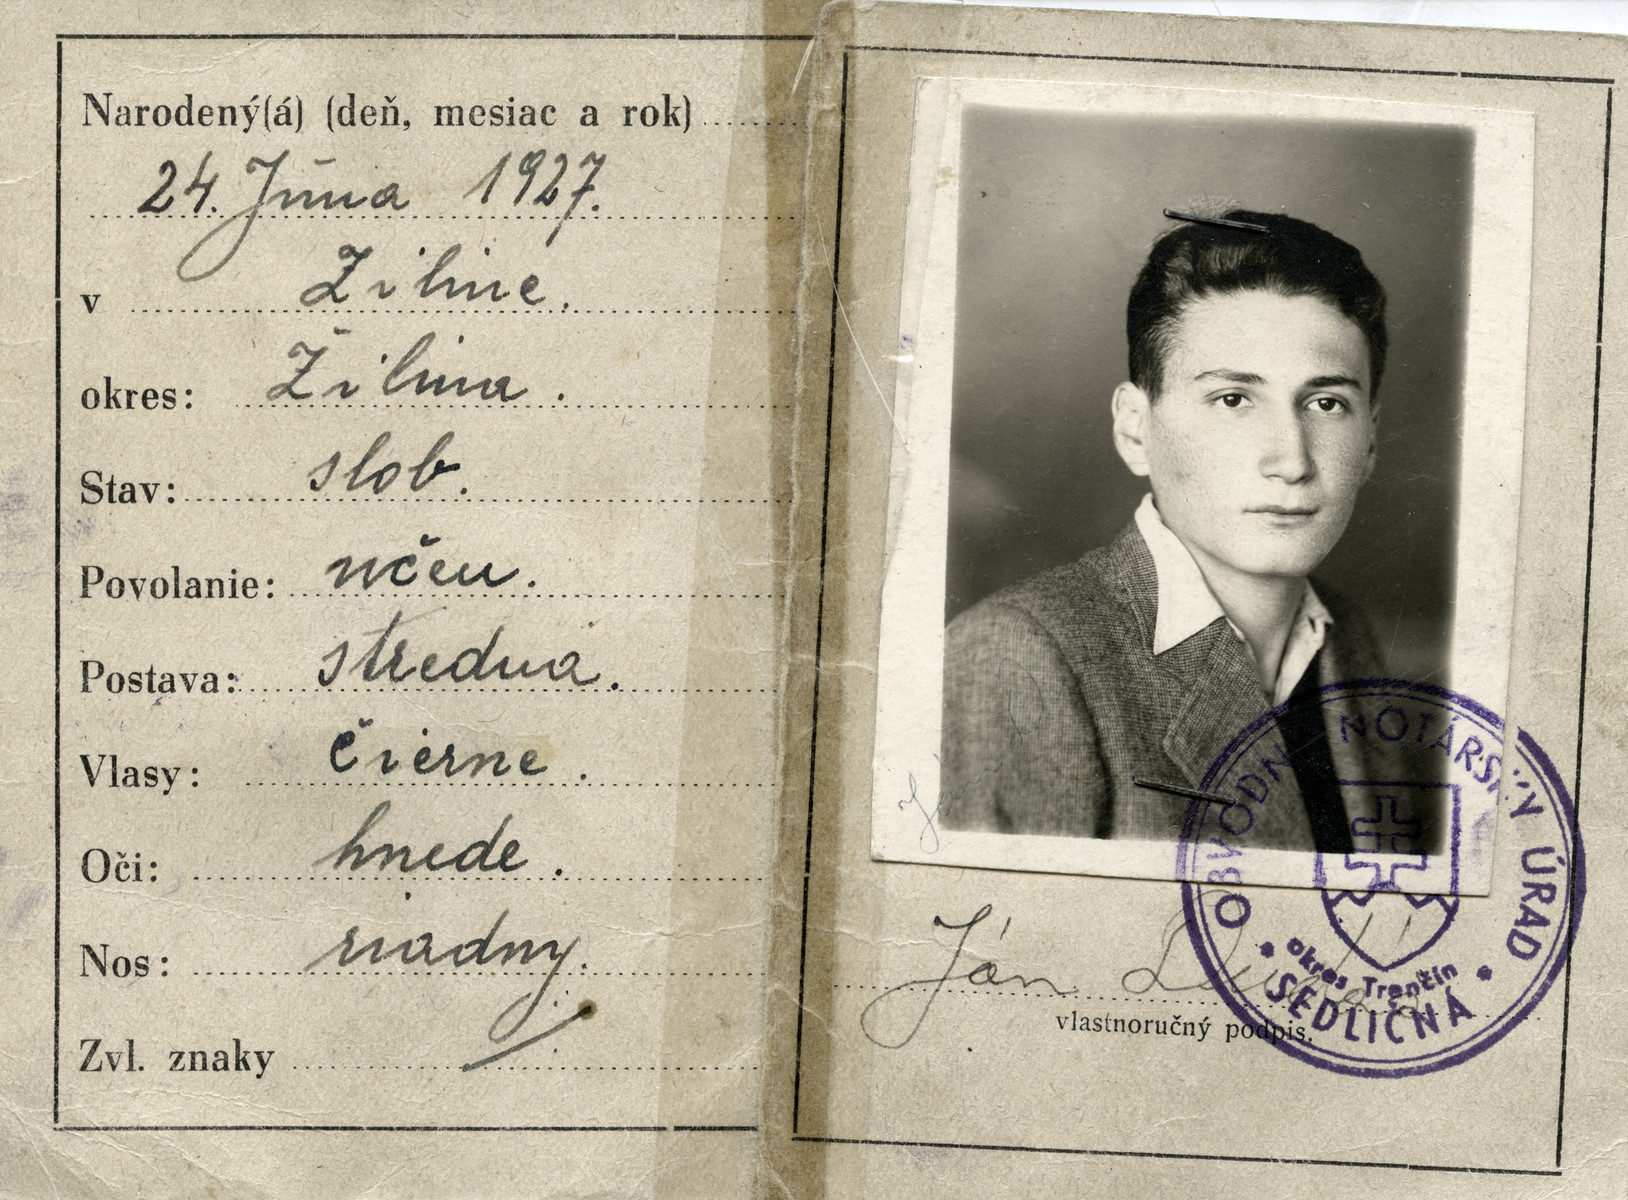 False identification card issued to David Steiner under the name Jan Dudas by the Jewish underground.